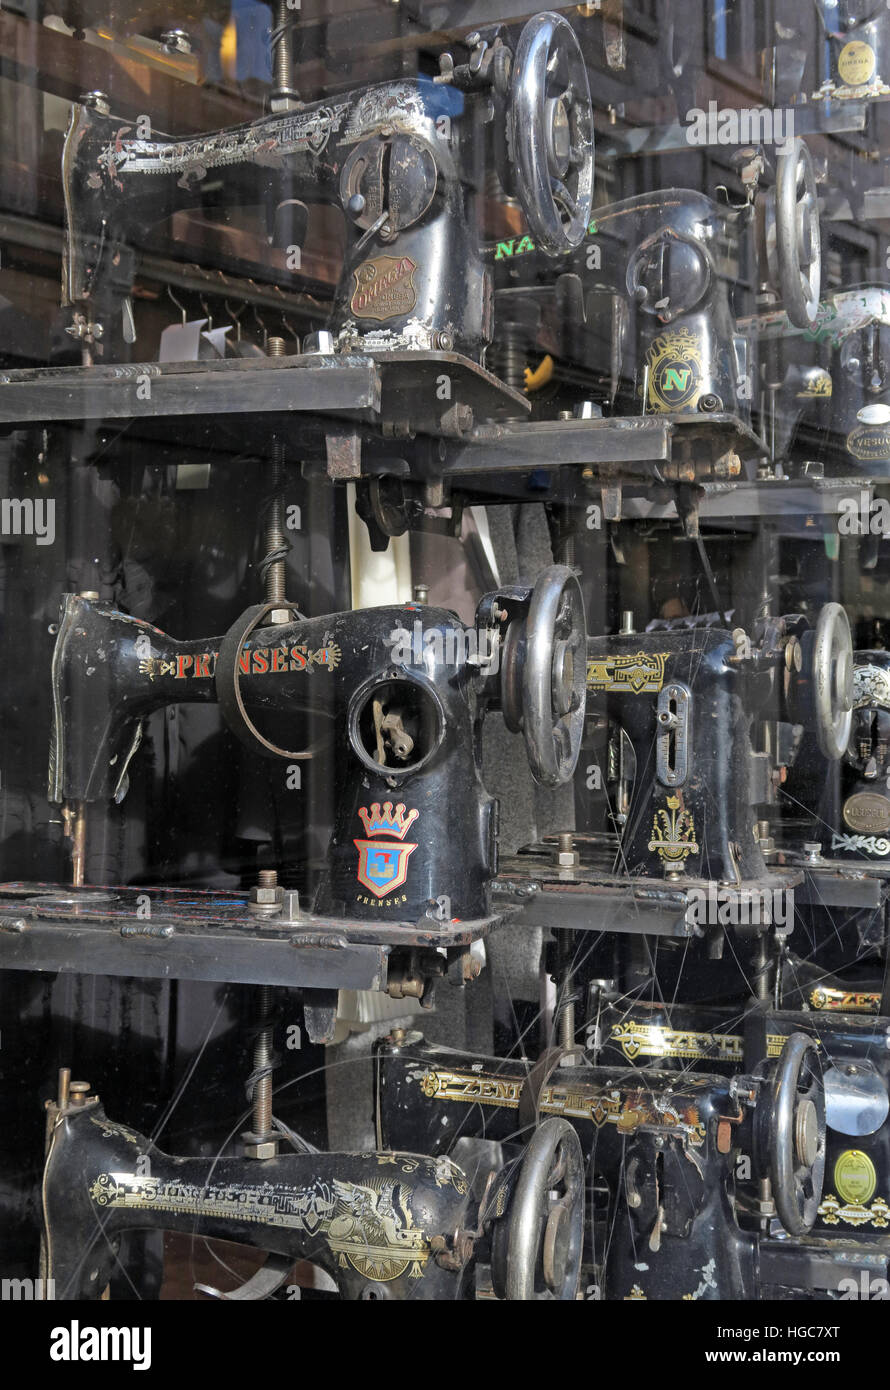 Sewing Machines in Shop window of All Saints Spittalfields - Stock Image